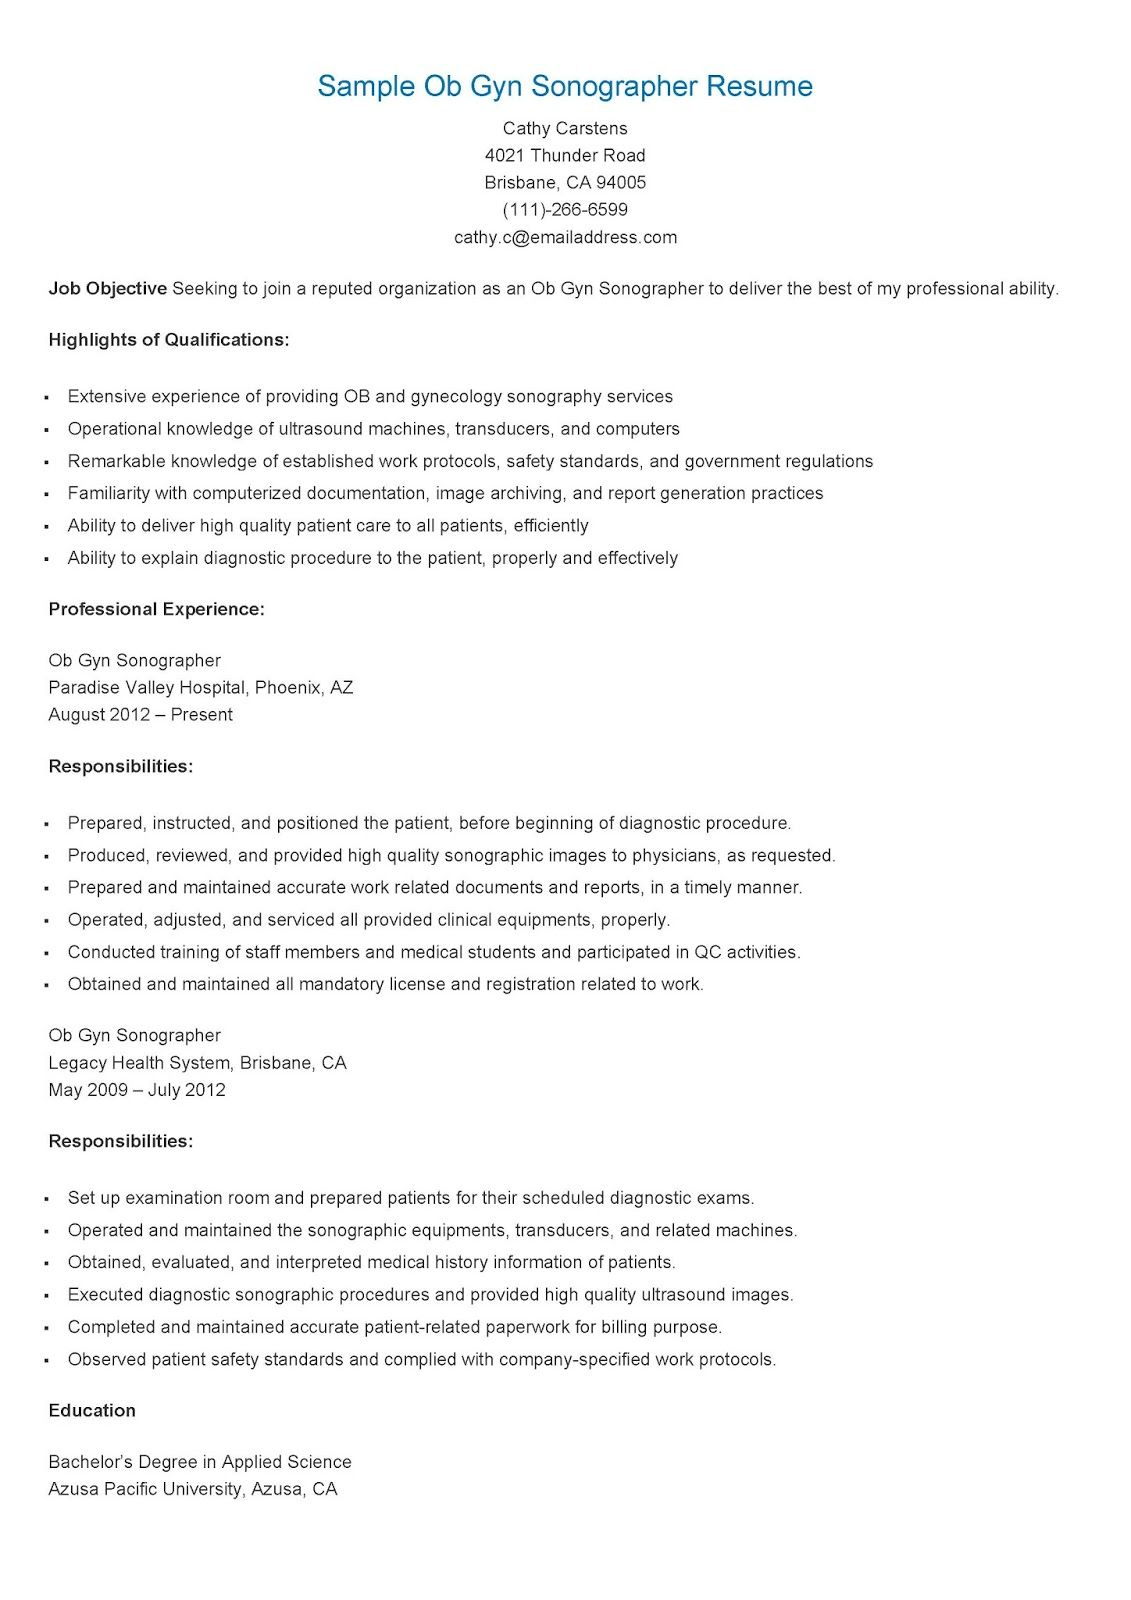 sample ob gyn sonographer resume